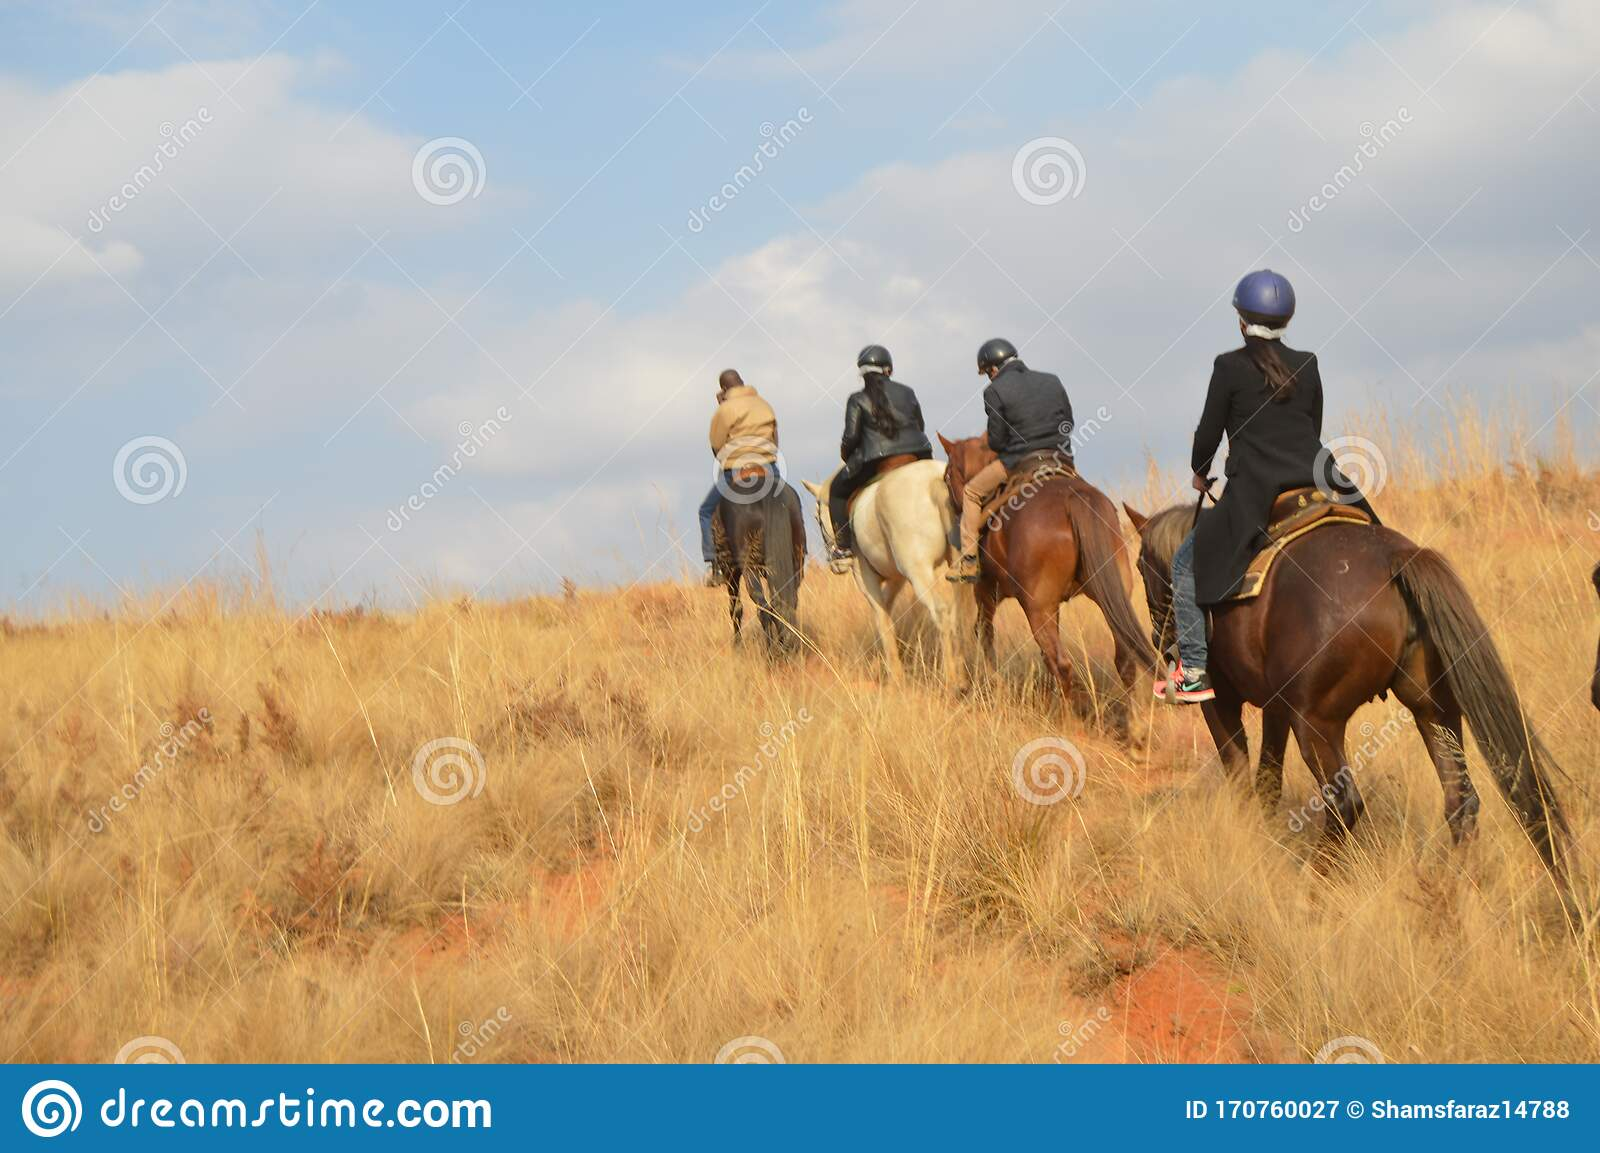 Group Of Indian Horse Riding Riders On A Trail In Drakensberg Region In South Africa Editorial Photography Image Of Group Horseback 170760027